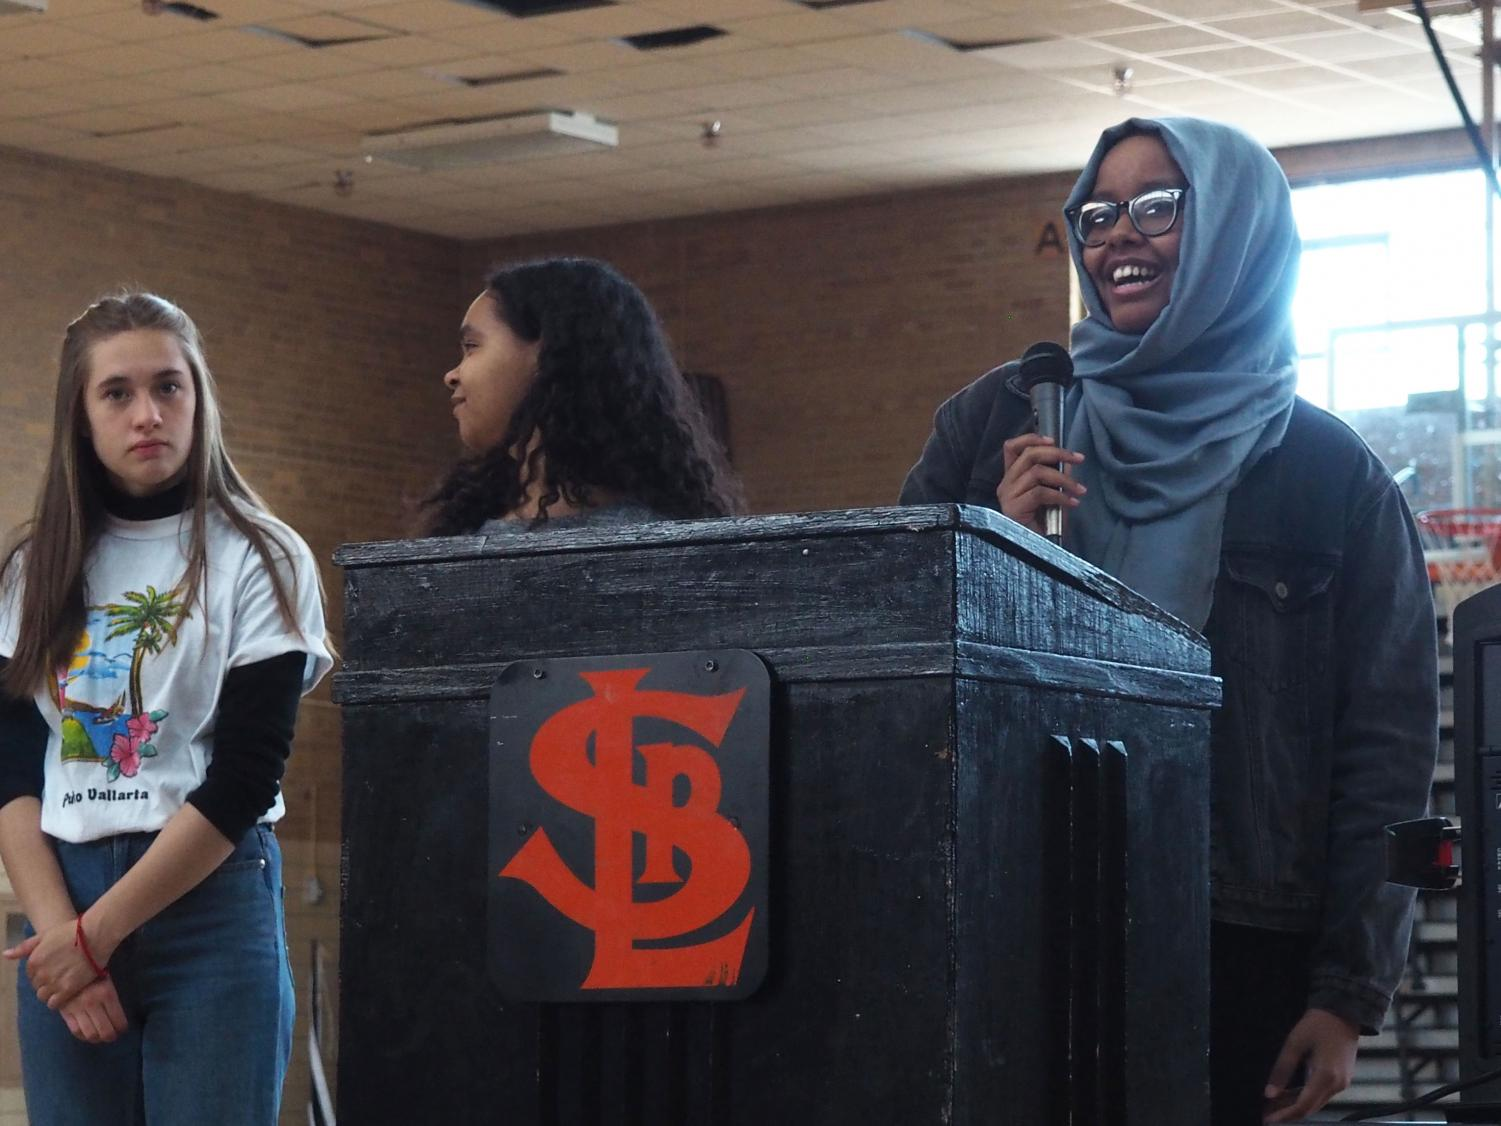 NHS Vice President Senior Marian Mohamud inducts incoming Vice President junior Maggie Klaers at the NHS induction ceremony May 3 in the old gym. NHS inductees' families were invited to the ceremony and breakfast was provided.